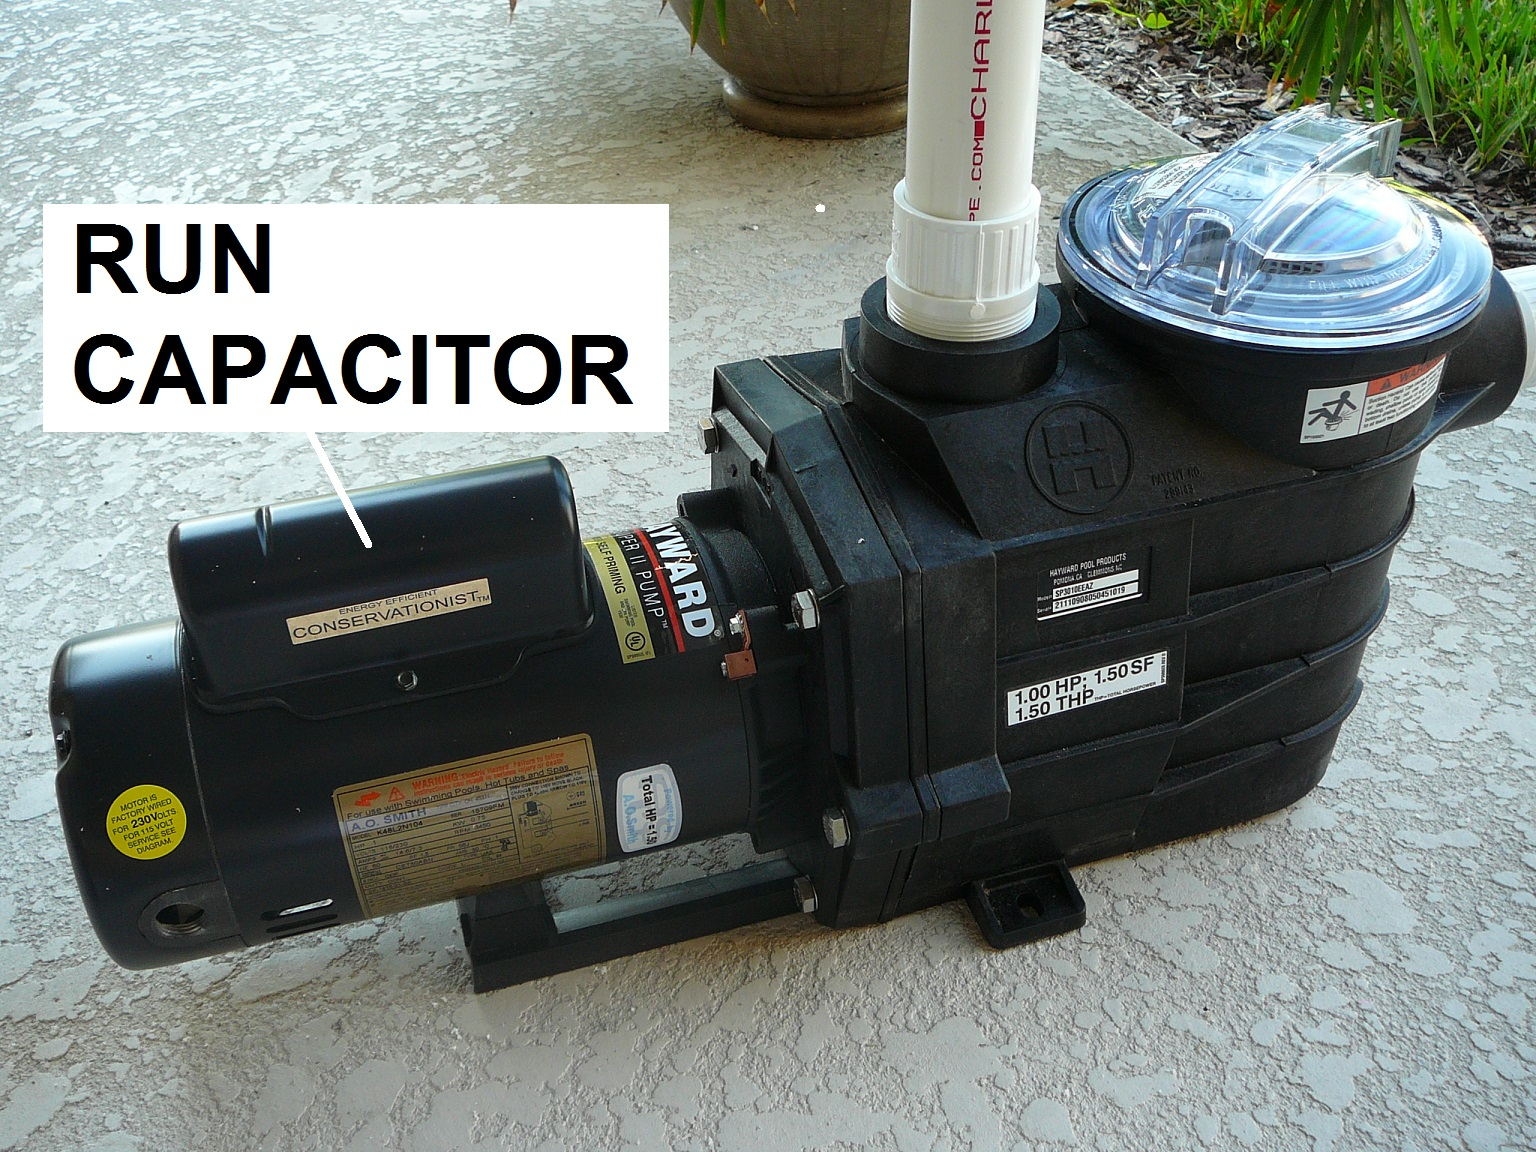 1 p1060078 1?format=jpg&scale=both&mode=pad&anchor=middlecenter&width=300&height=250 how to select the right capacitor for your pool pump motor  at aneh.co